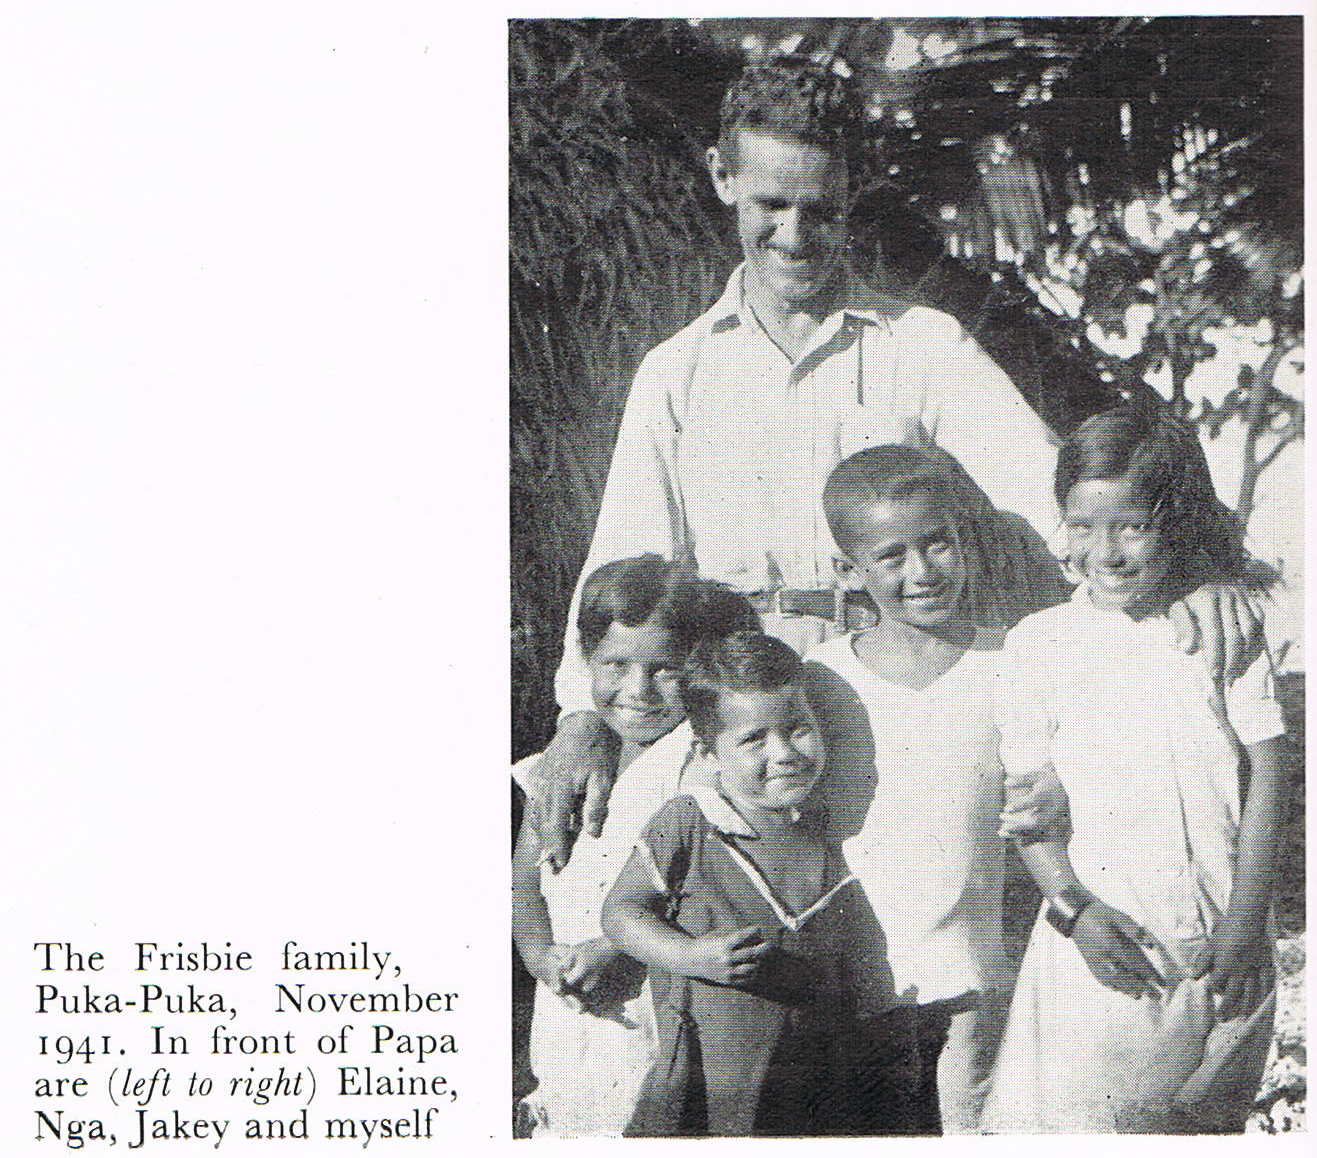 Robert Dean Frisbie with his children Johnny, Jakey, Elaine, and Nga.